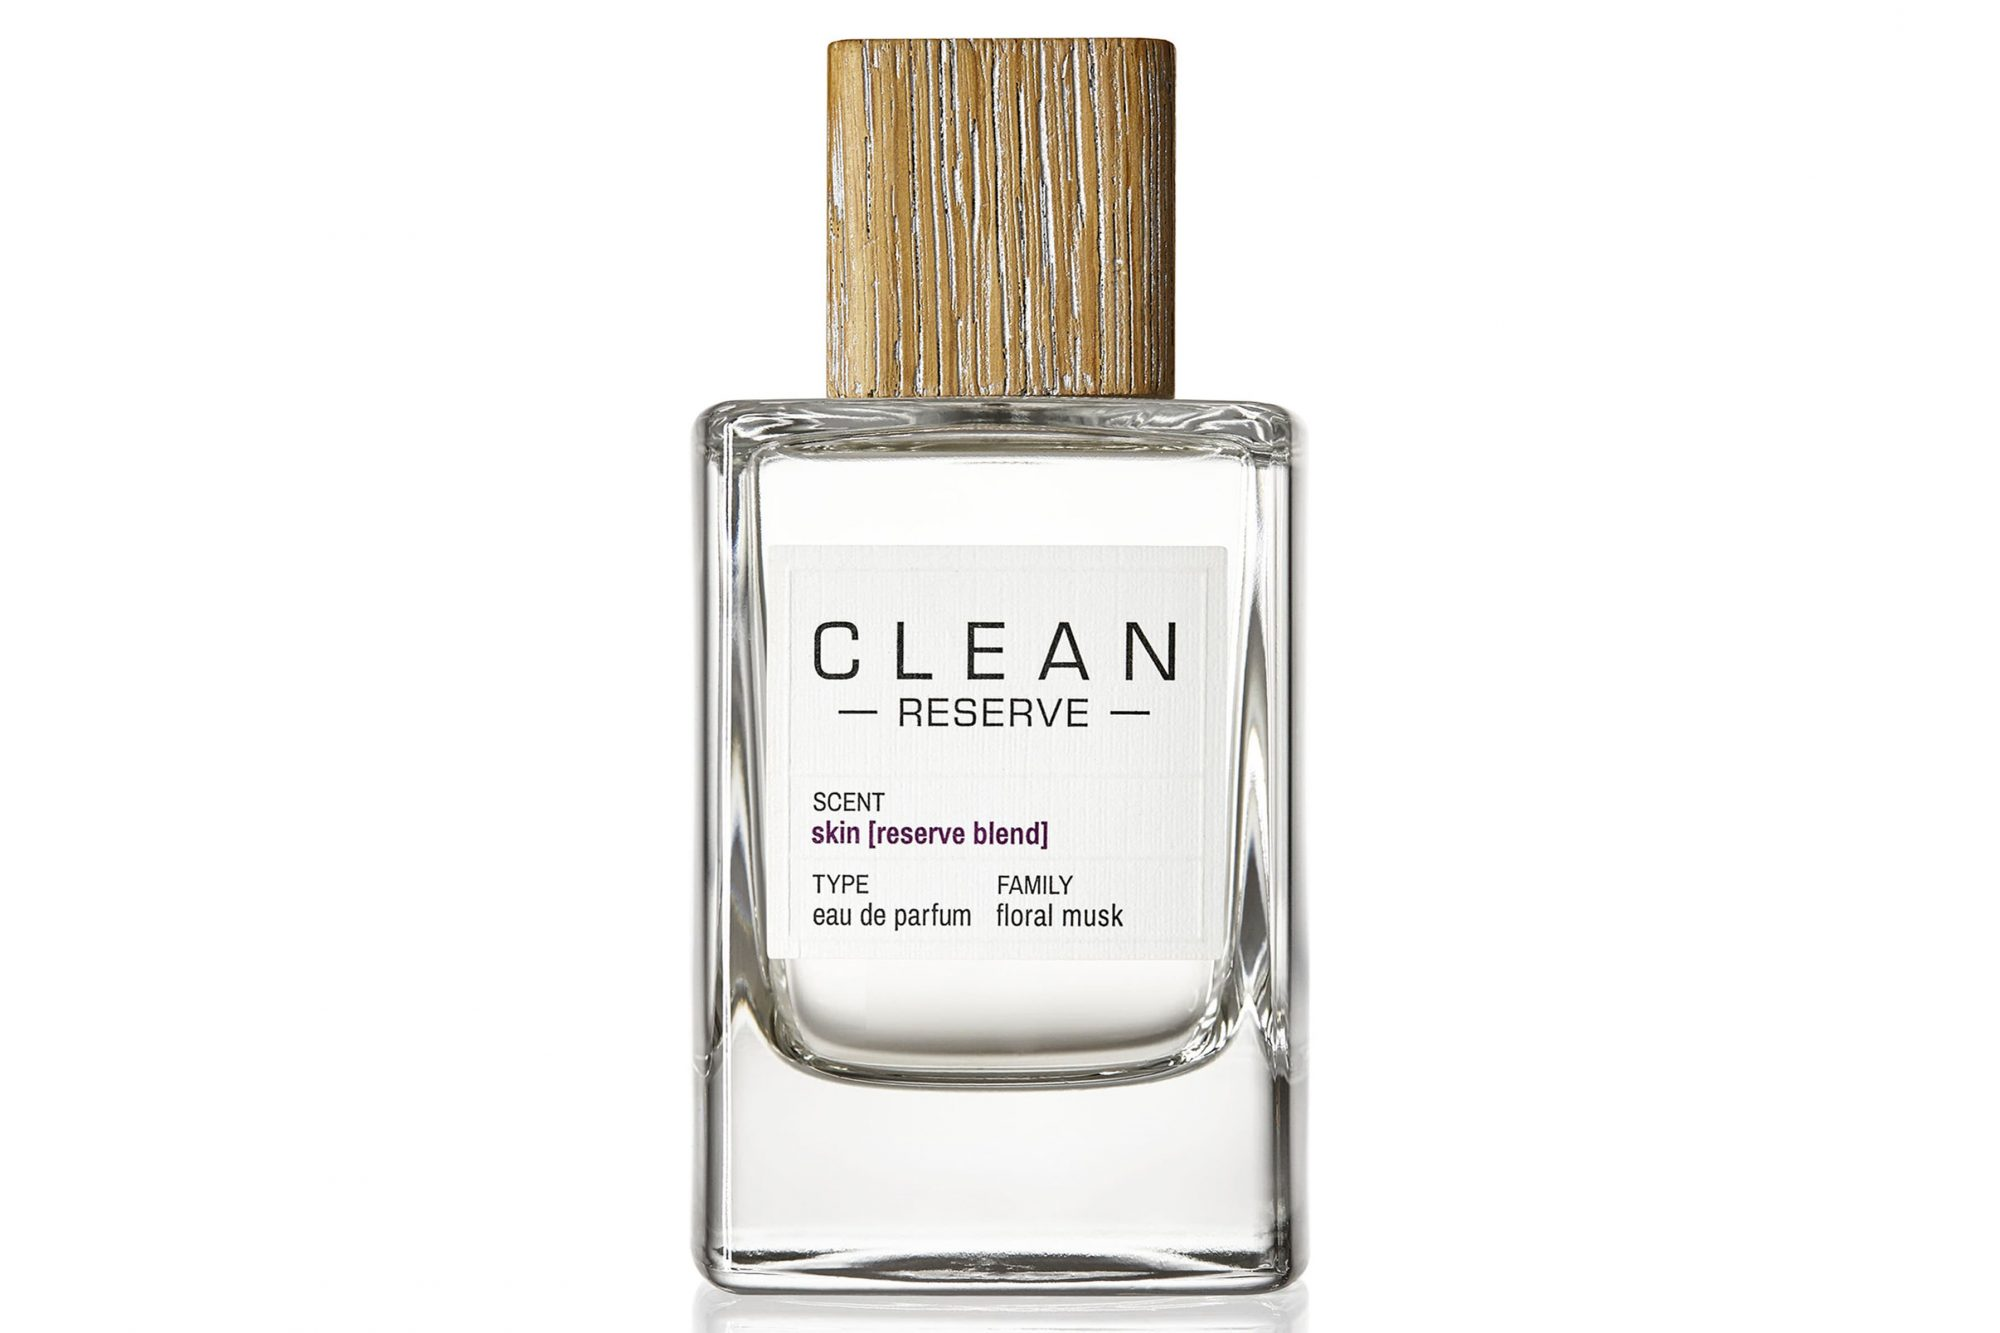 clean reserve summer fragrance perfume